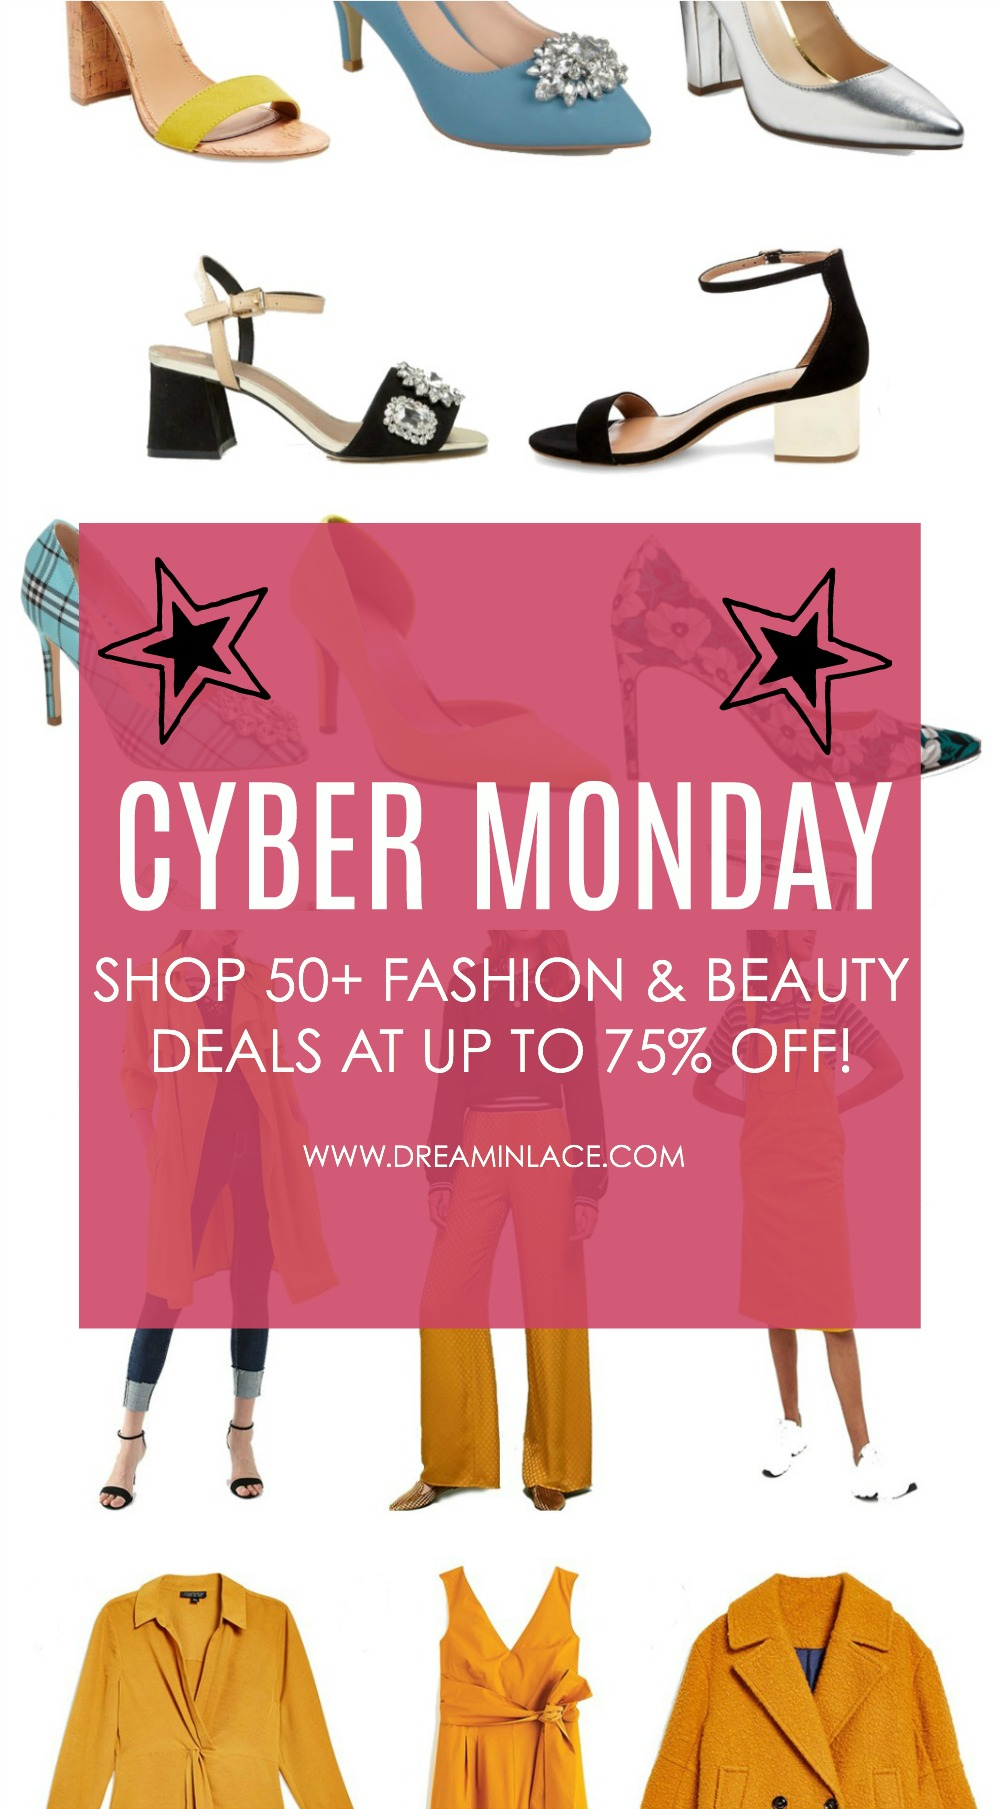 2018 Cyber Monday Sale Round-Up I Shop more than 50 of the best fashion and beauty sales with up to 75% off! #CyberMonday #HolidayShopping #GiftIdeas #CyberWeek